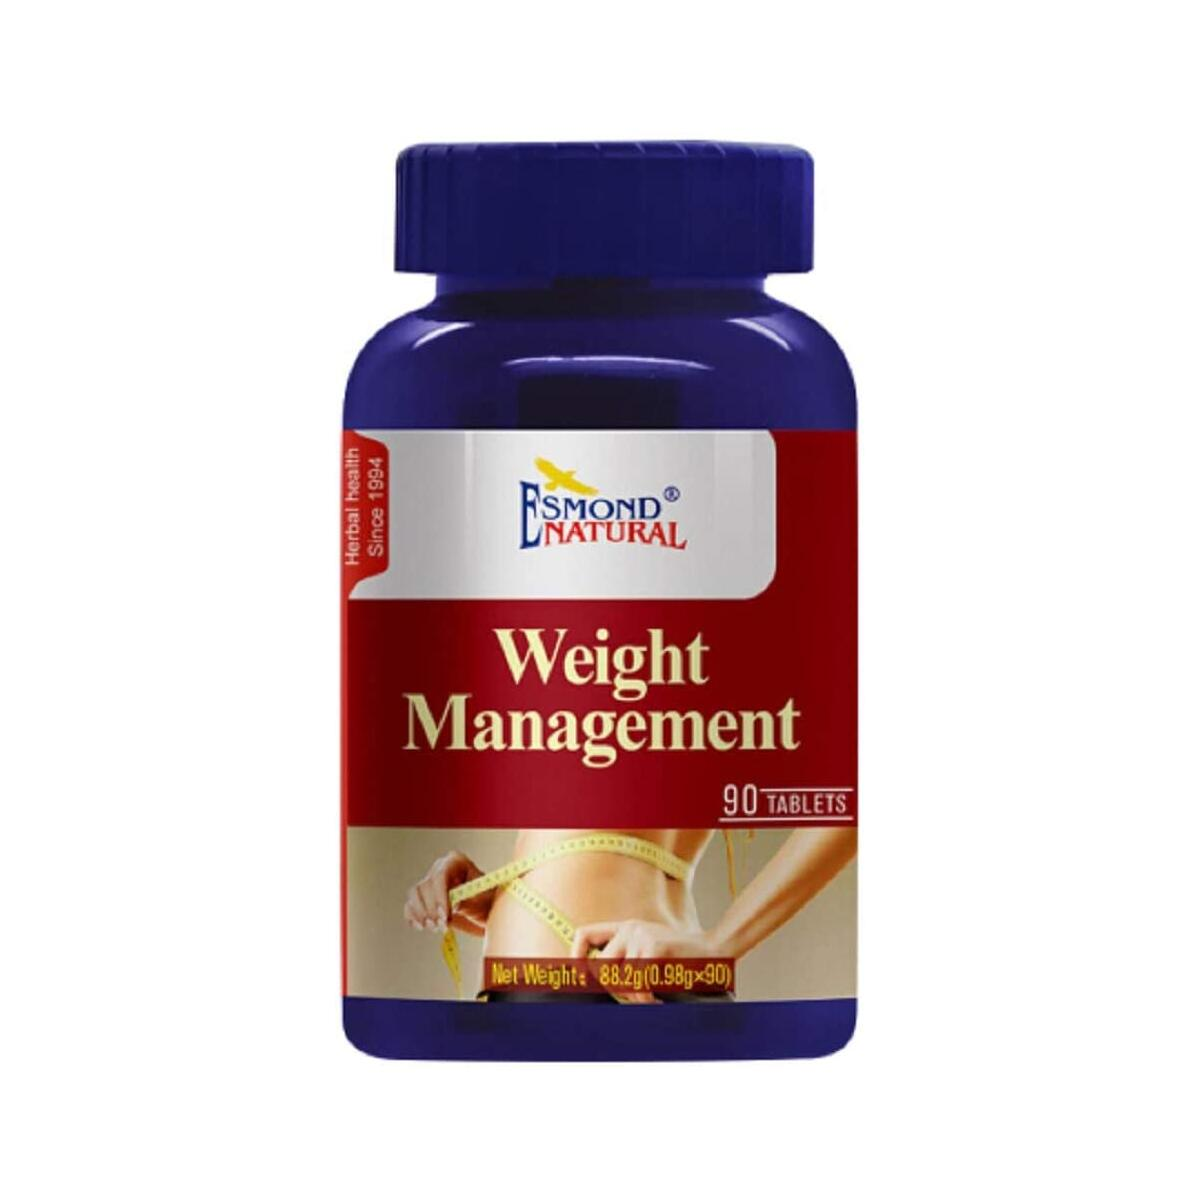 (5 Count, 25% Off) Esmond Natural: Weight Management (Supports Sugar and Energy Metabolism), GMP, Natural Product Assn Certified, Made in USA-450 Tablets